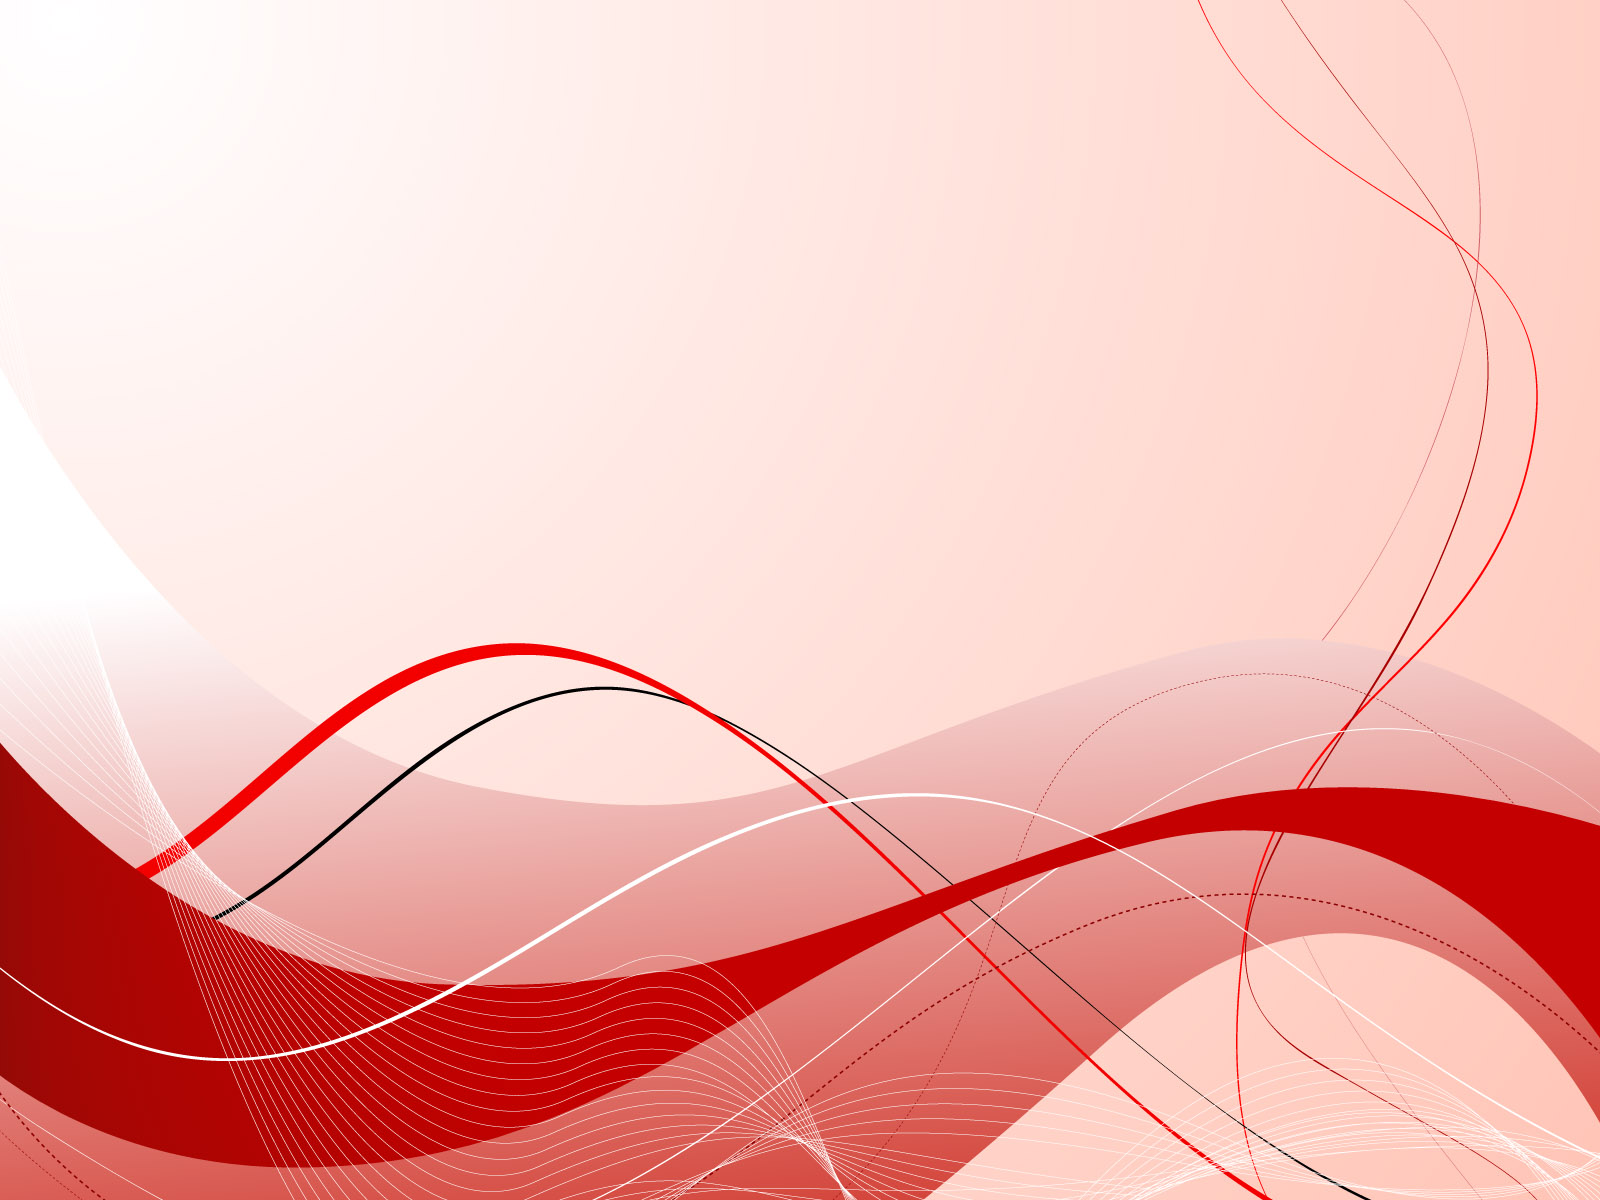 Free Download Red Abstract Composition Ppt Background Red Black